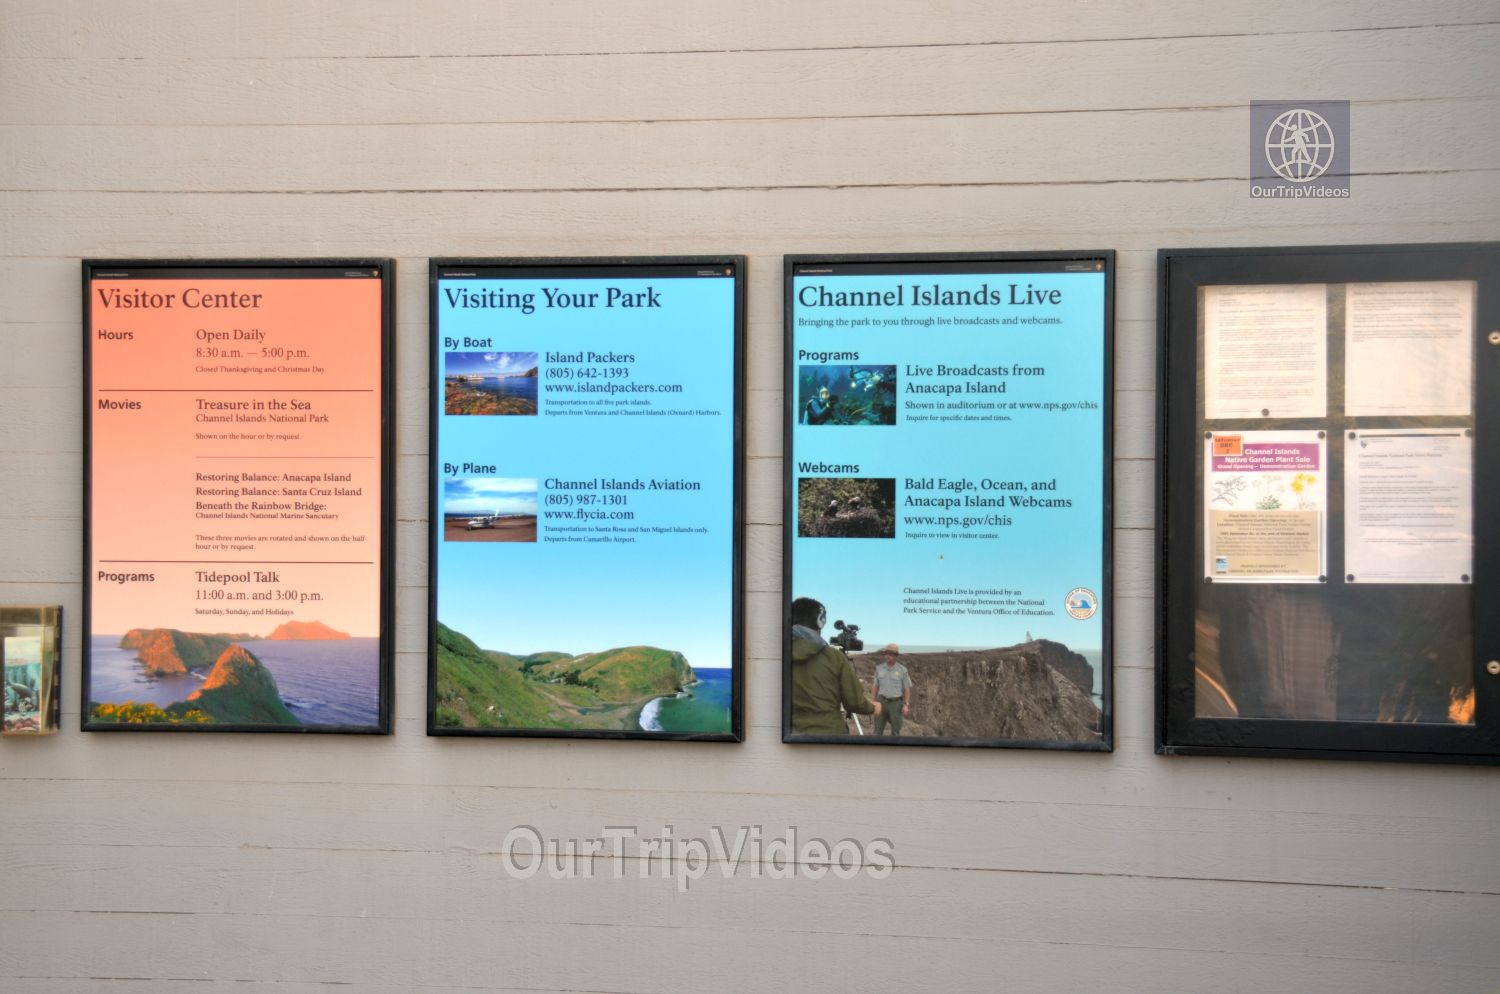 The Robert JL Visitor Center and Harbor cove beach, Ventura, CA, USA - Picture 3 of 25